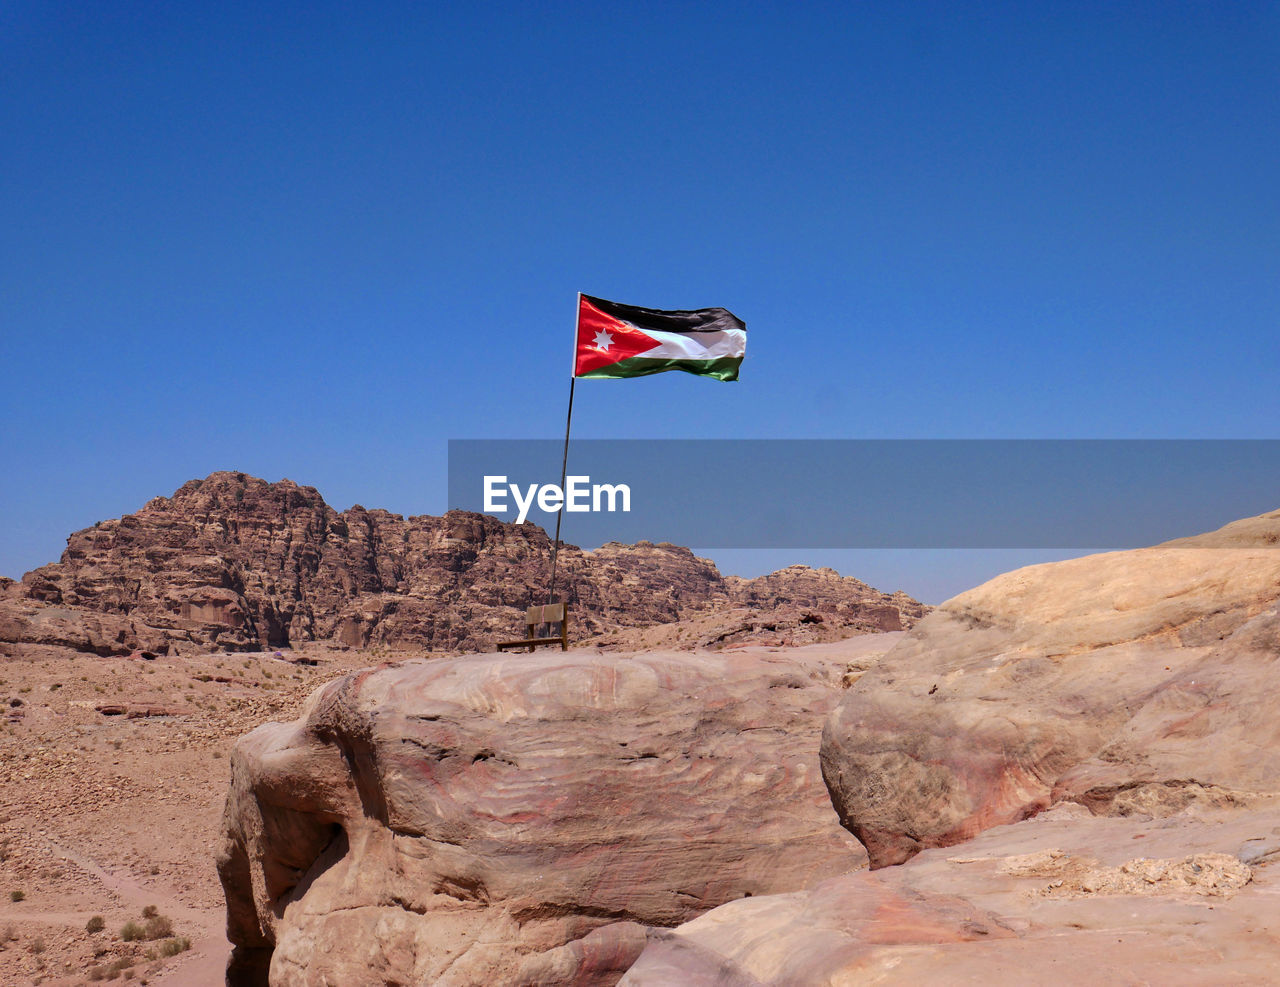 flag, patriotism, sky, environment, rock, rock - object, solid, clear sky, nature, wind, scenics - nature, blue, day, rock formation, mountain, copy space, no people, pride, non-urban scene, outdoors, arid climate, independence, climate, formation, national icon